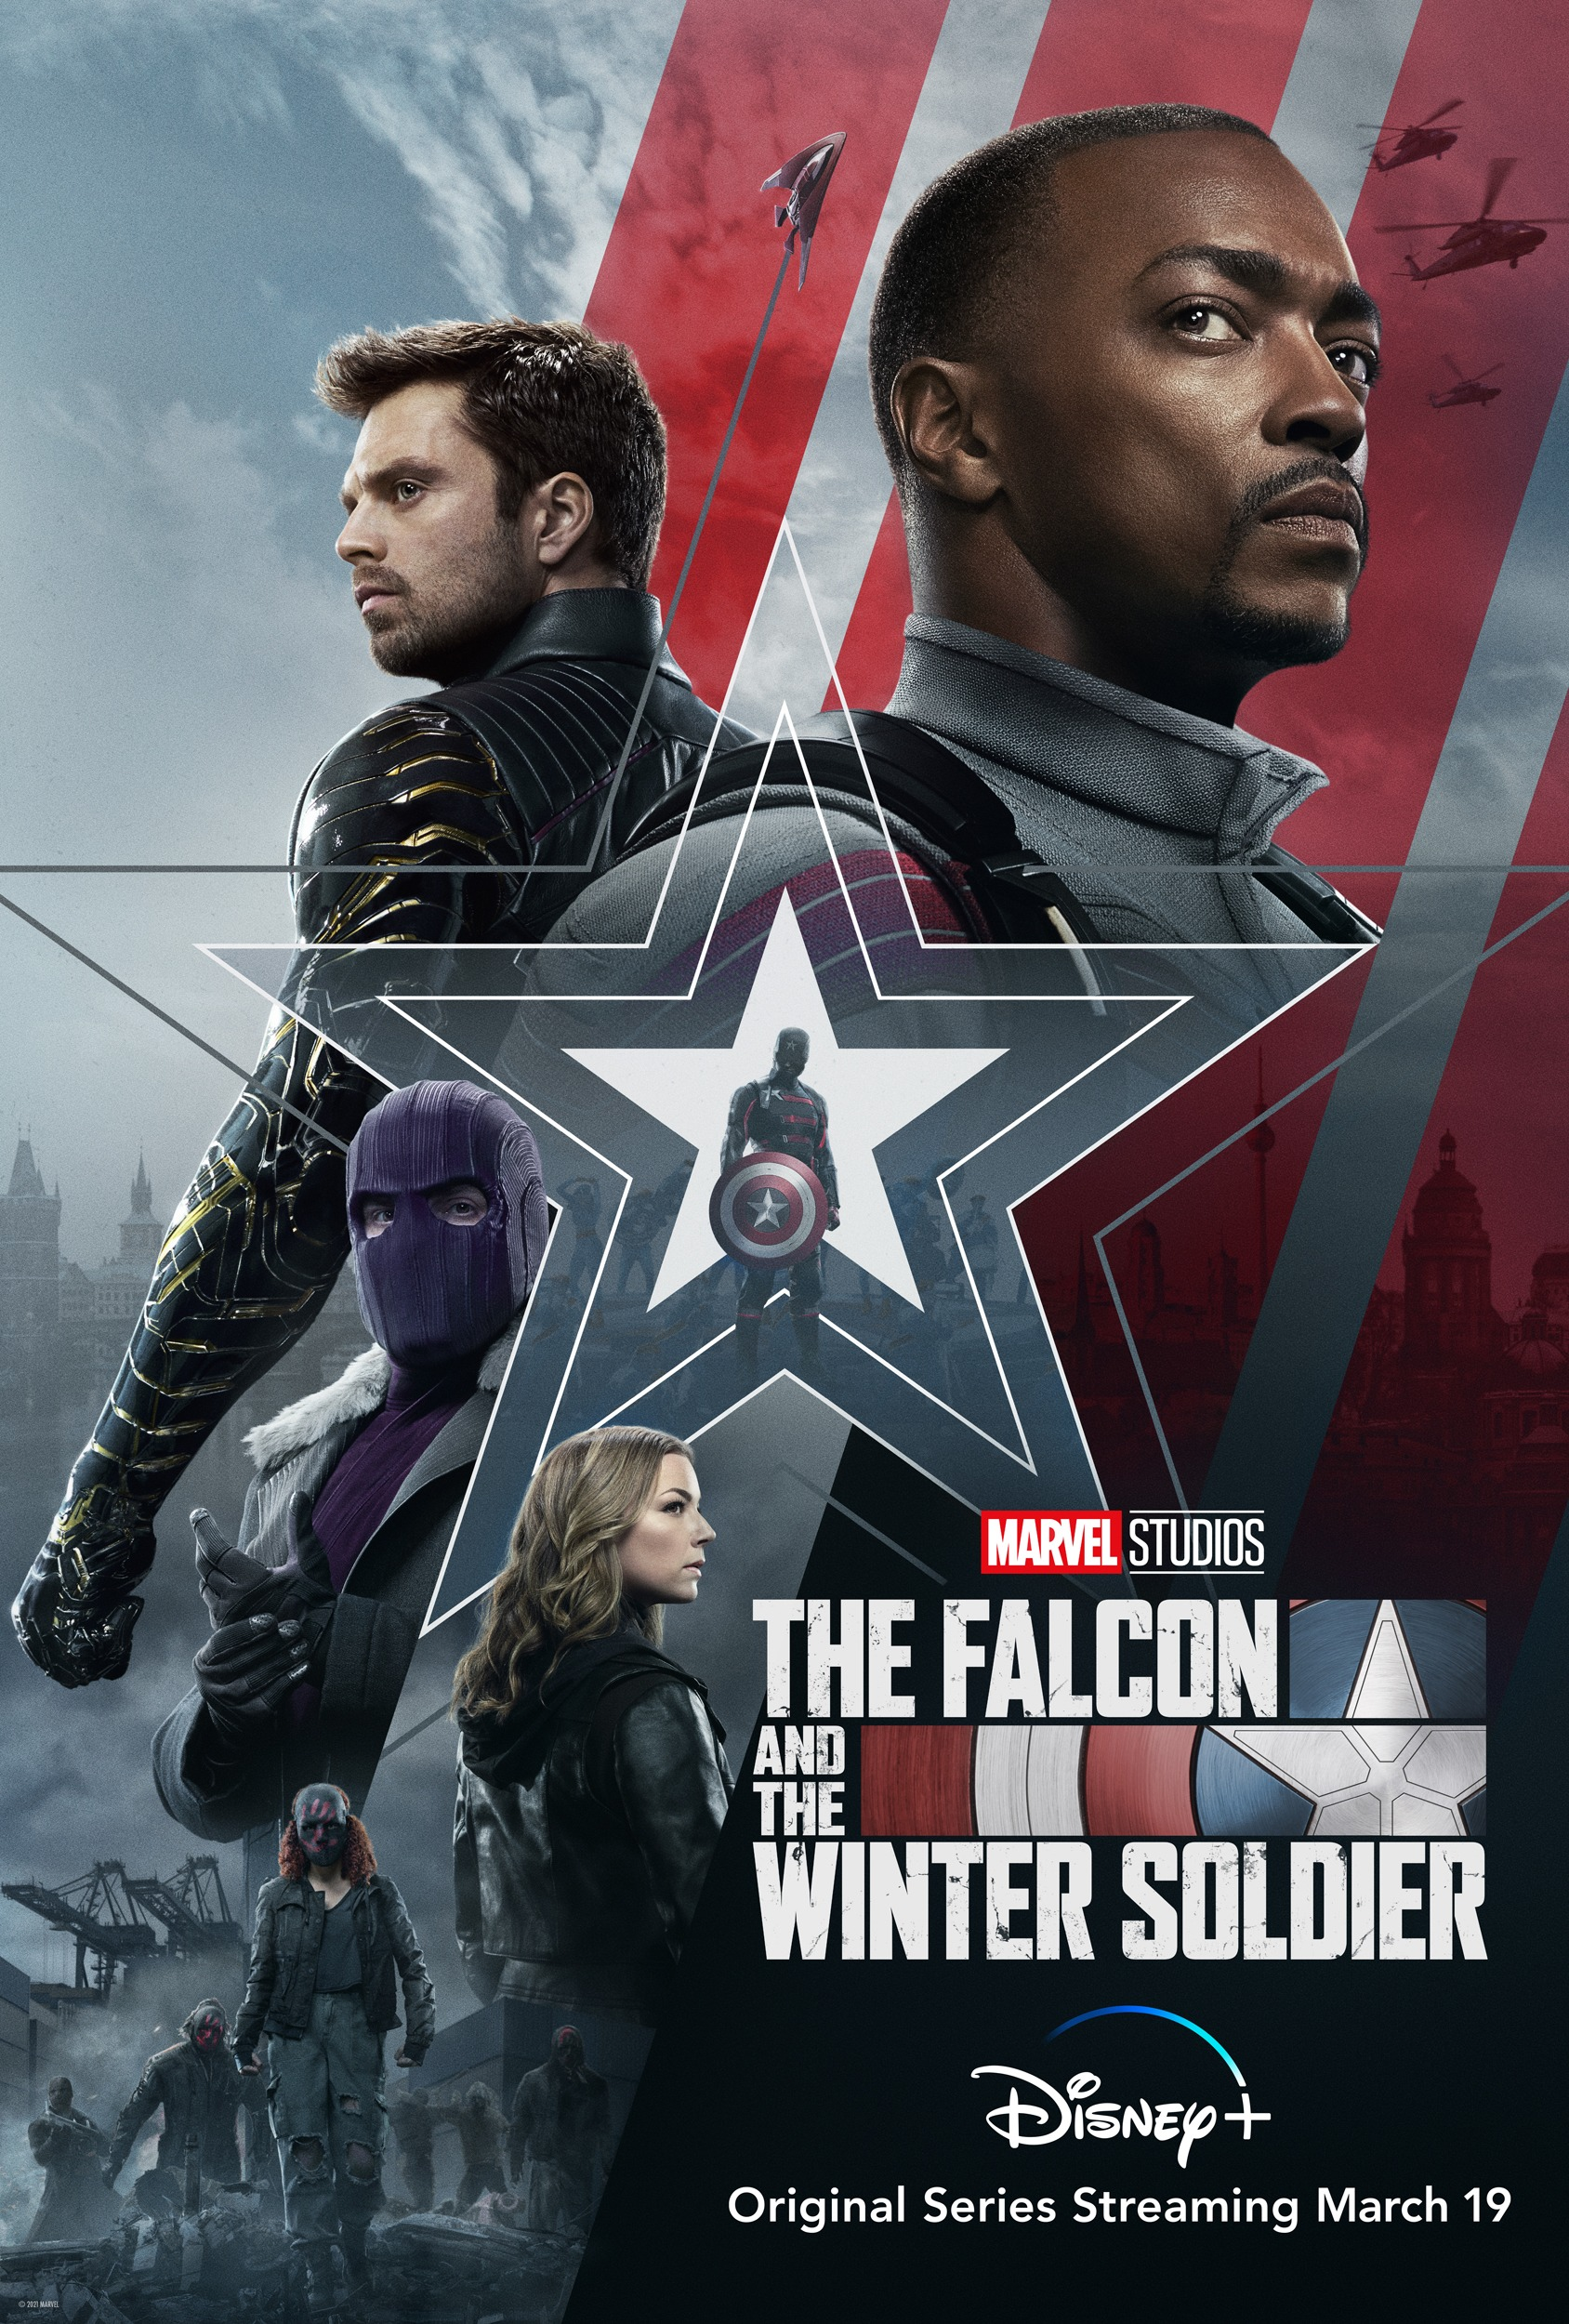 Call for Comments: Thoughts on Falcon and Winter Soldier